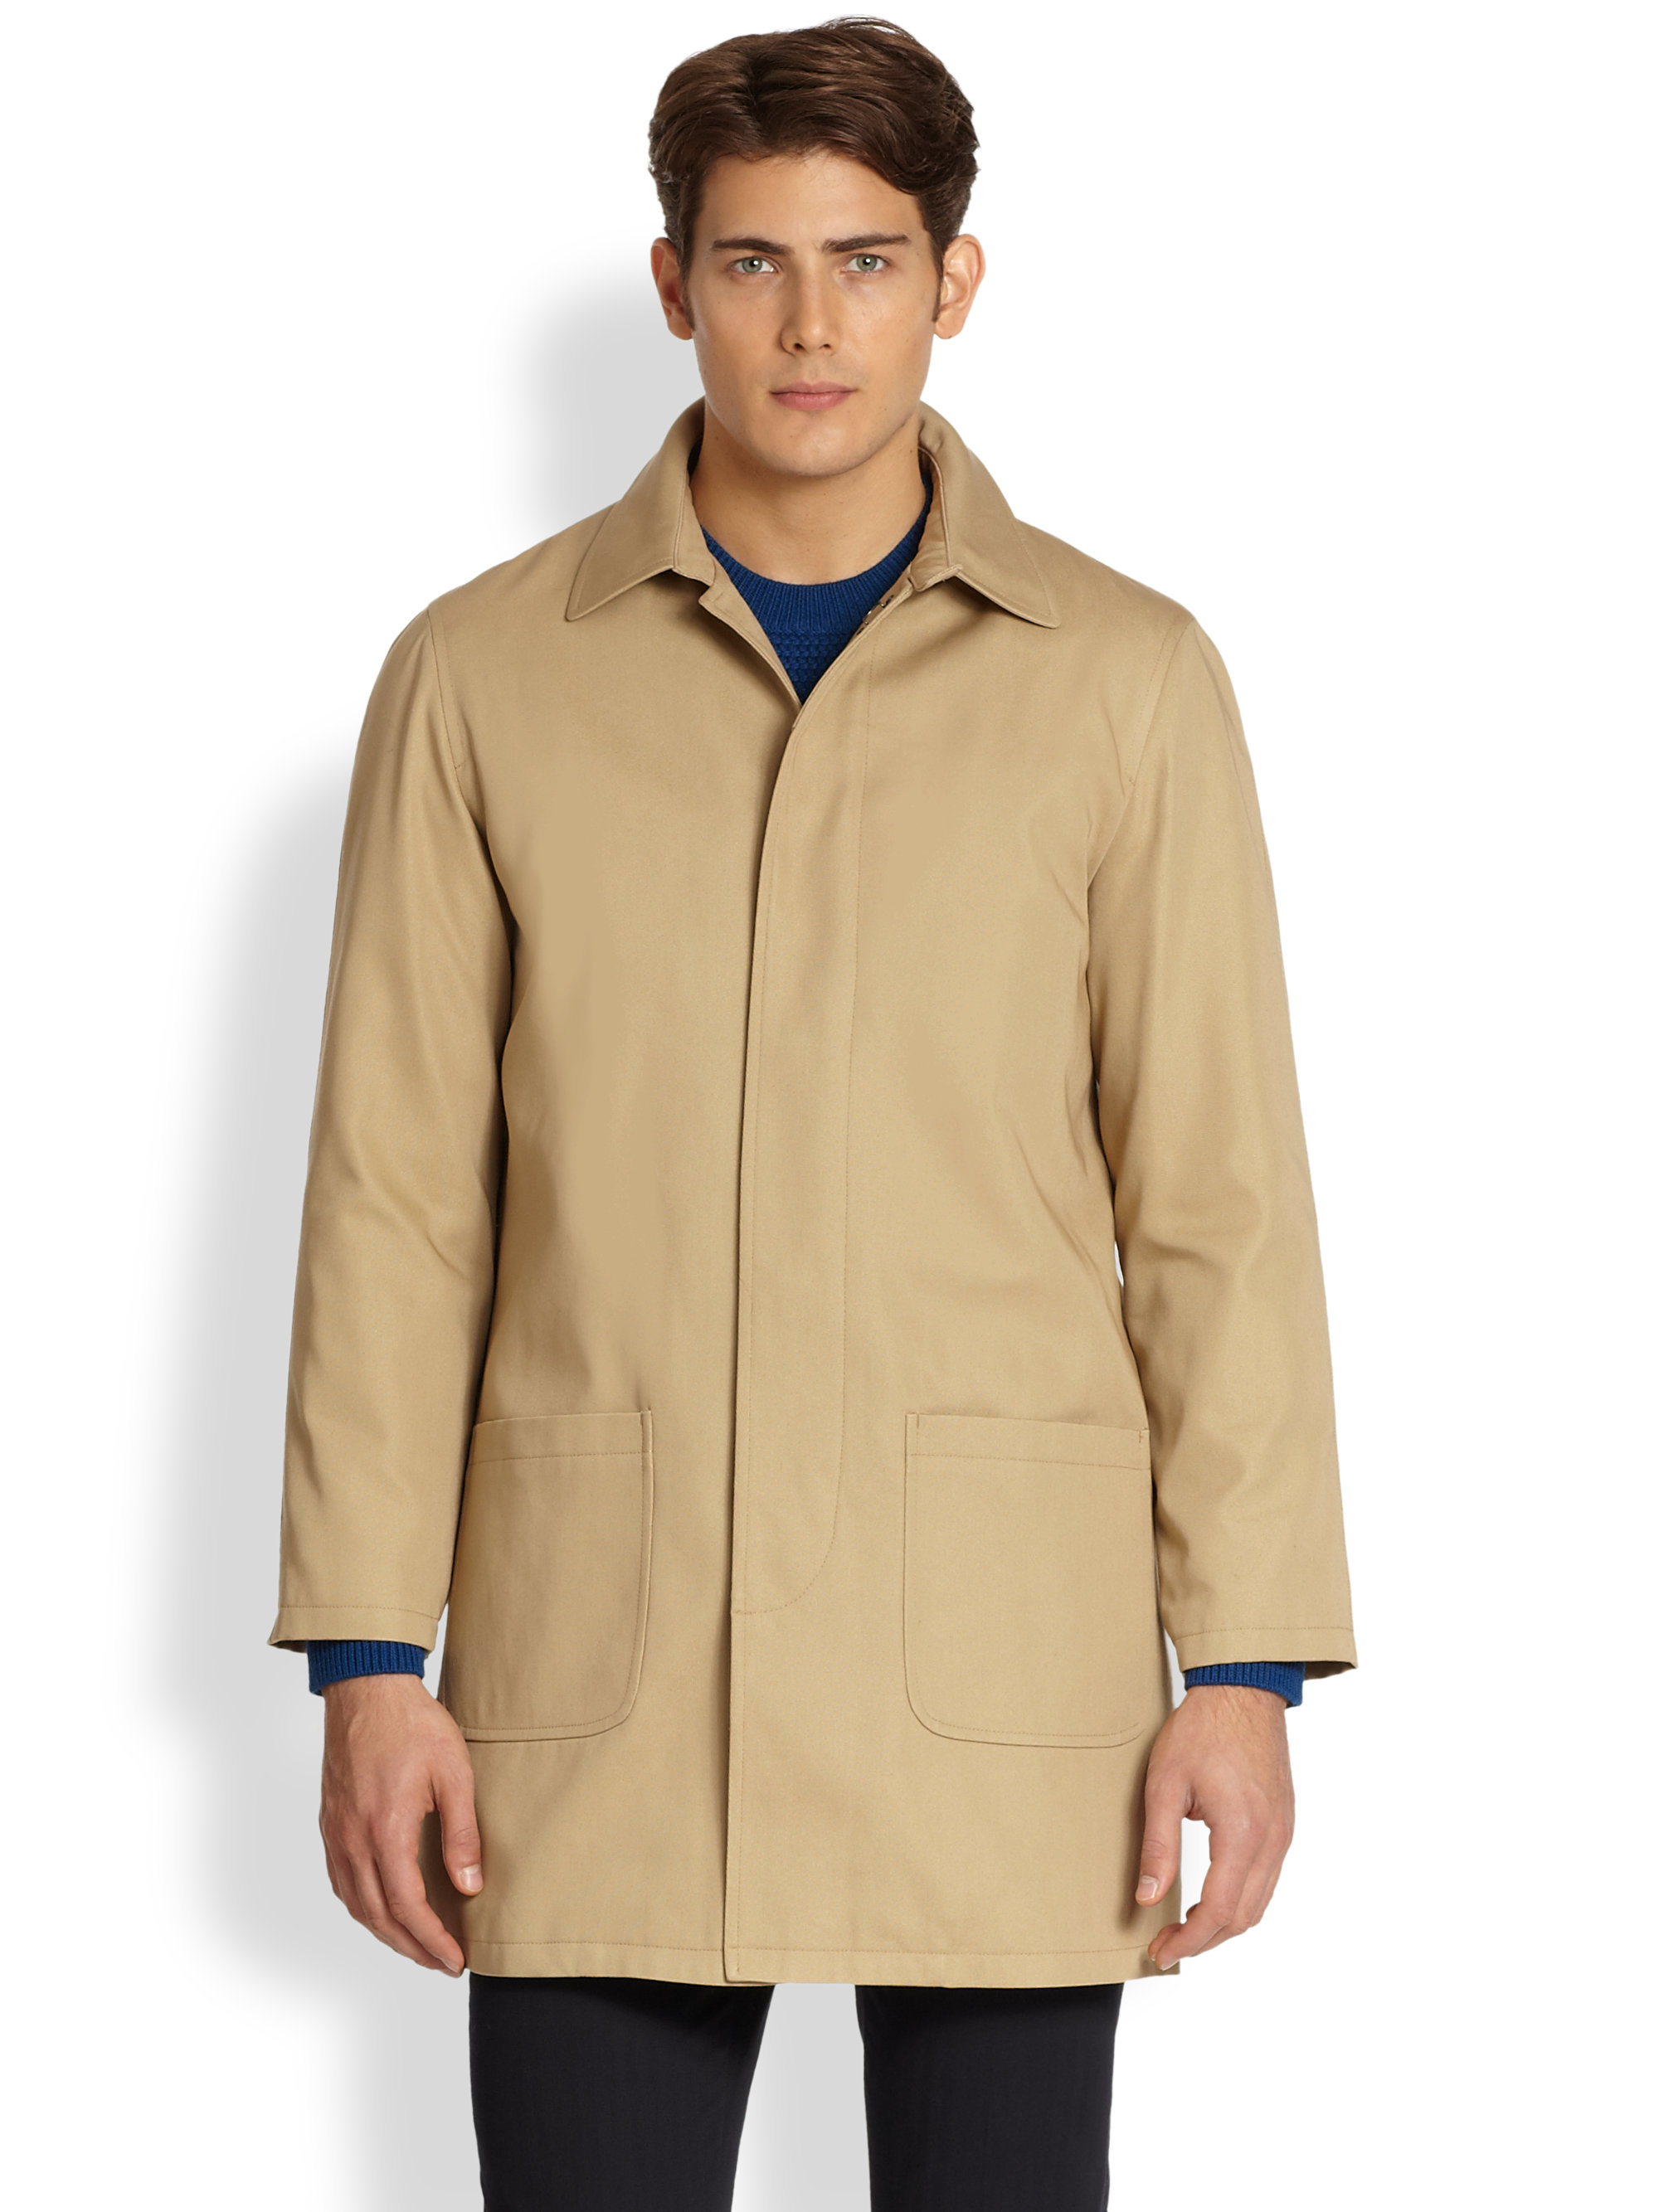 Raincoats & macs: Our favourites